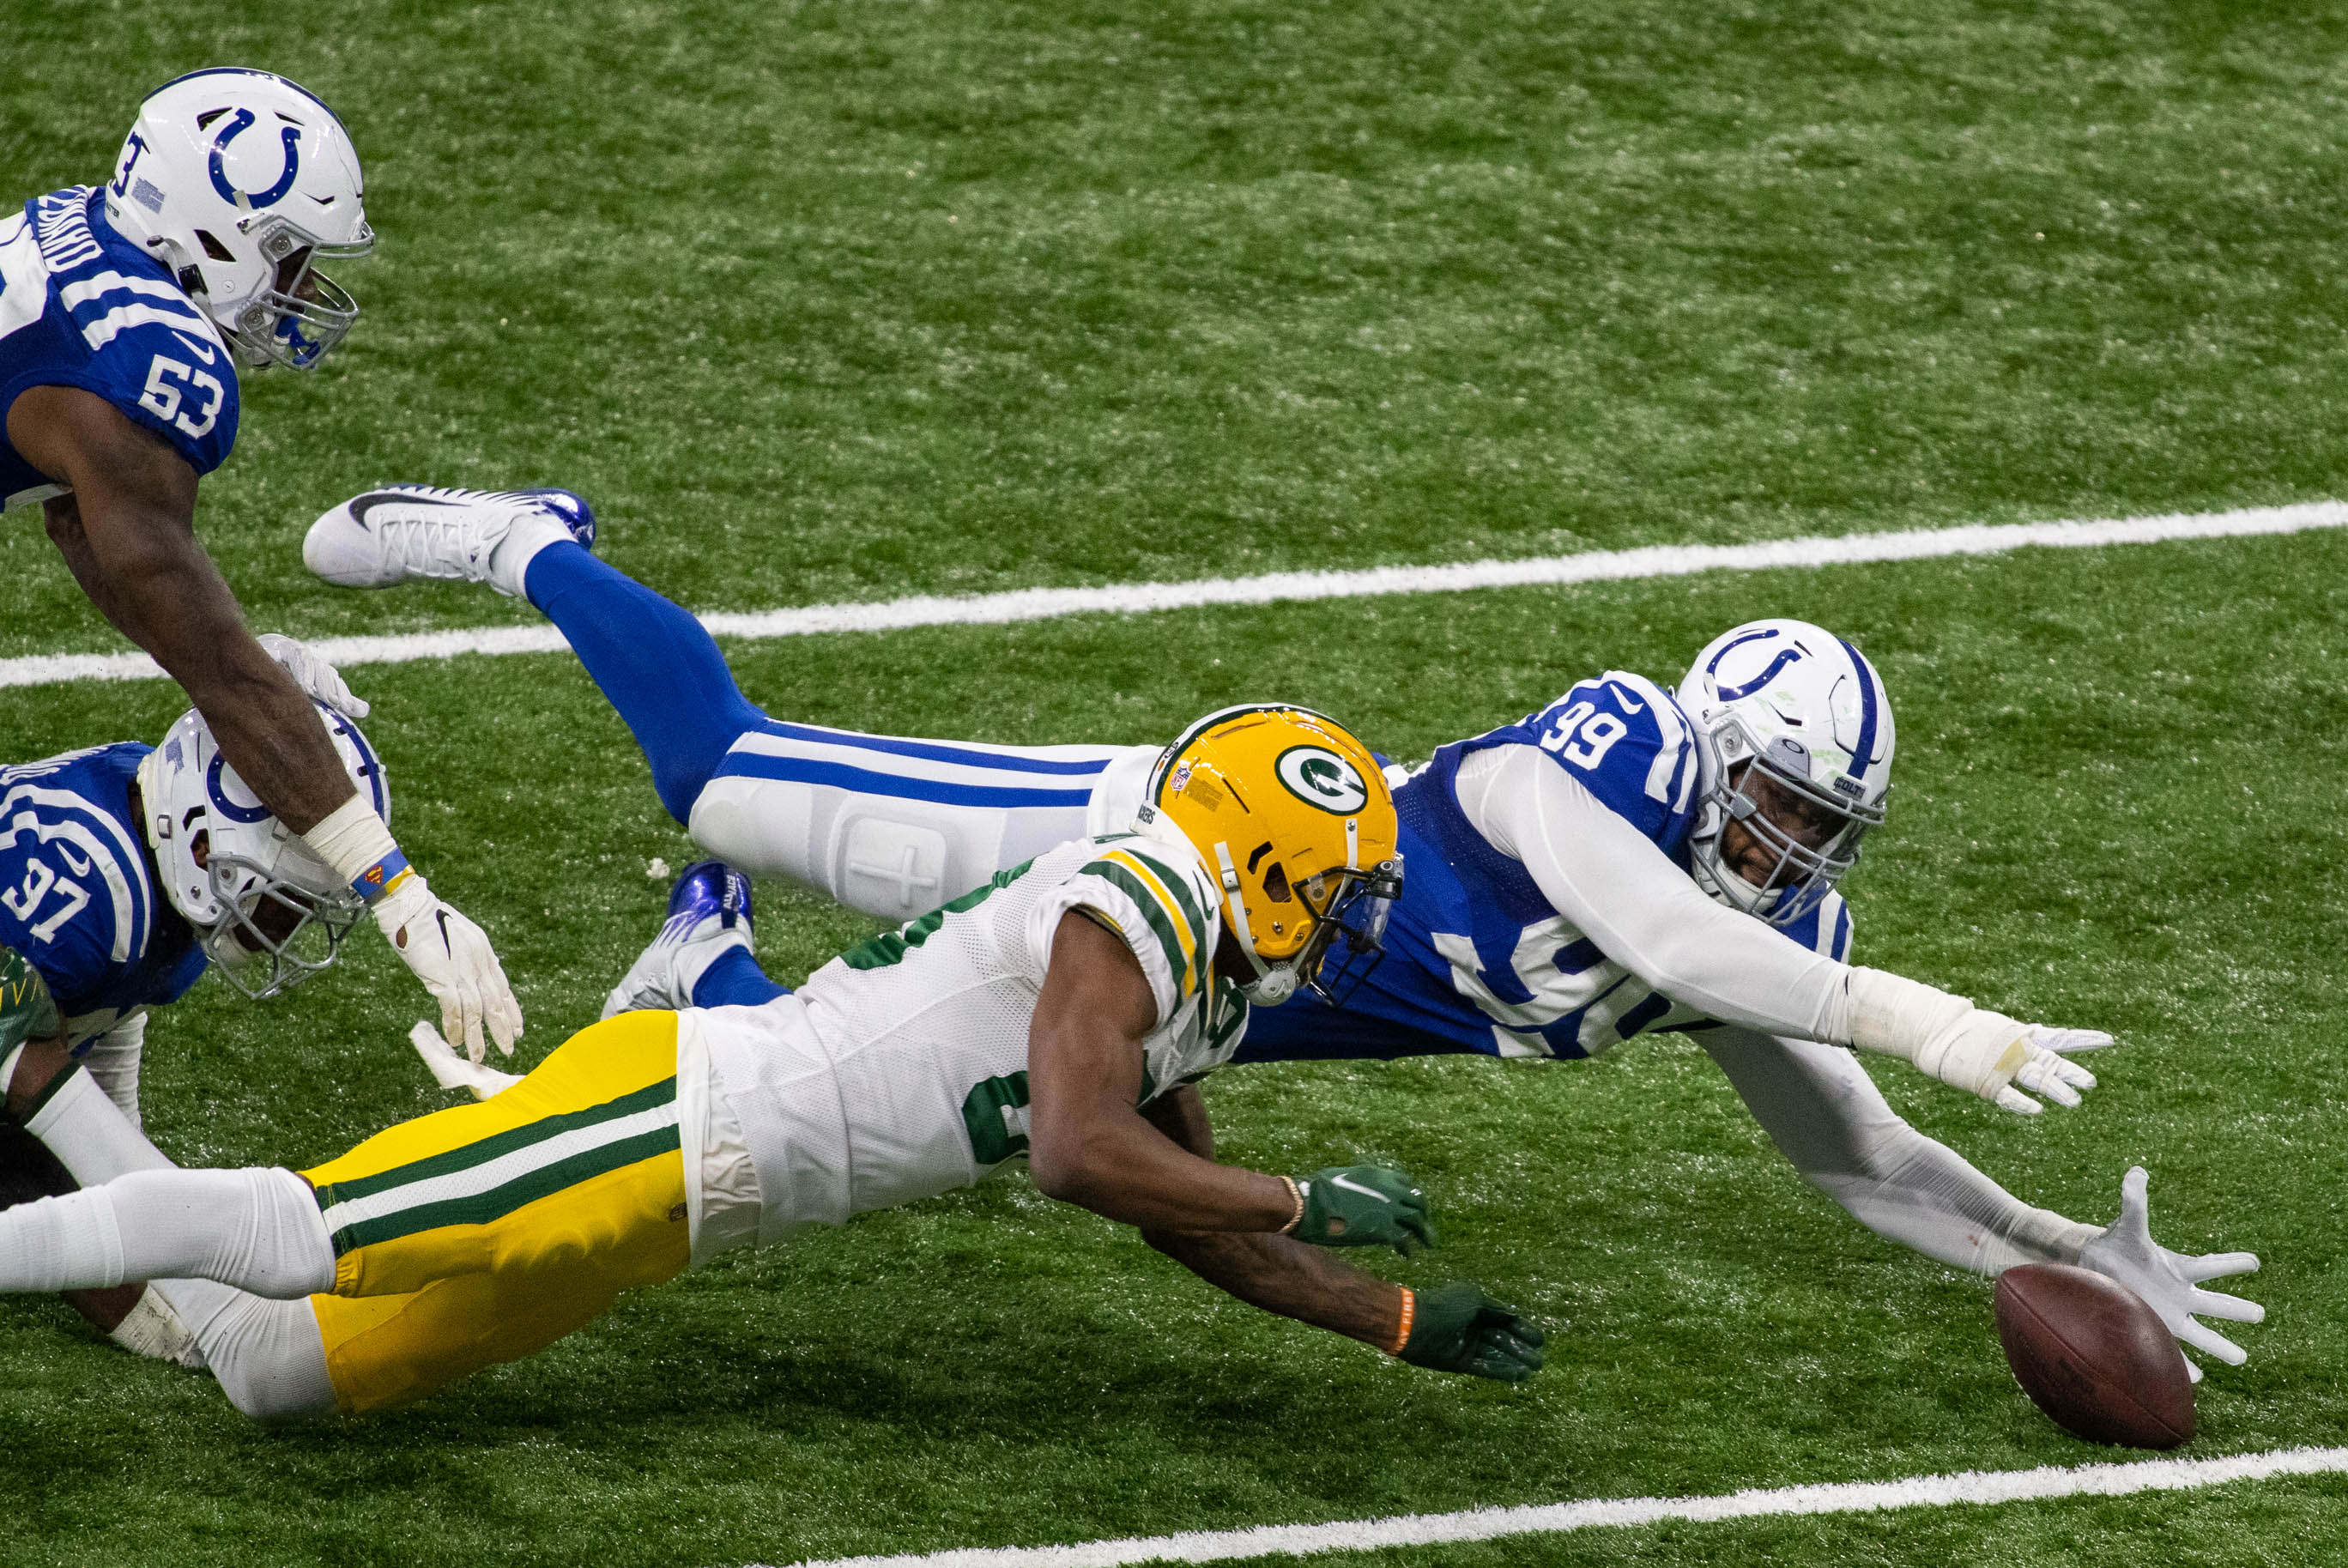 NFL: Green Bay Packers at Indianapolis Colts